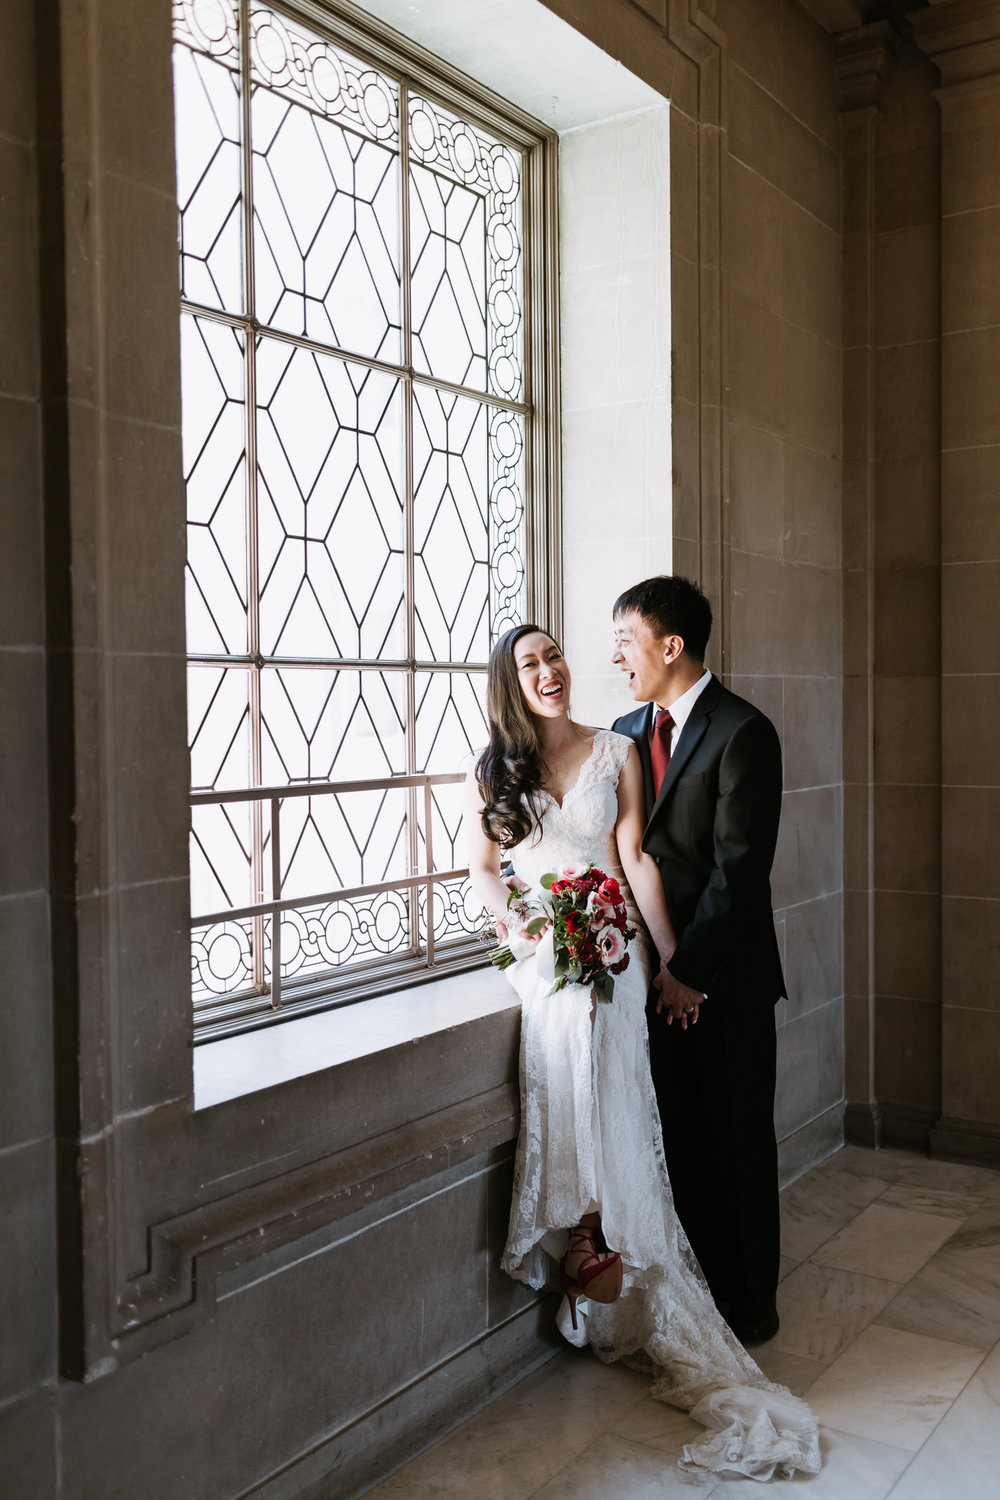 SanFrancisco-City-Hall-Elopement-36.jpg